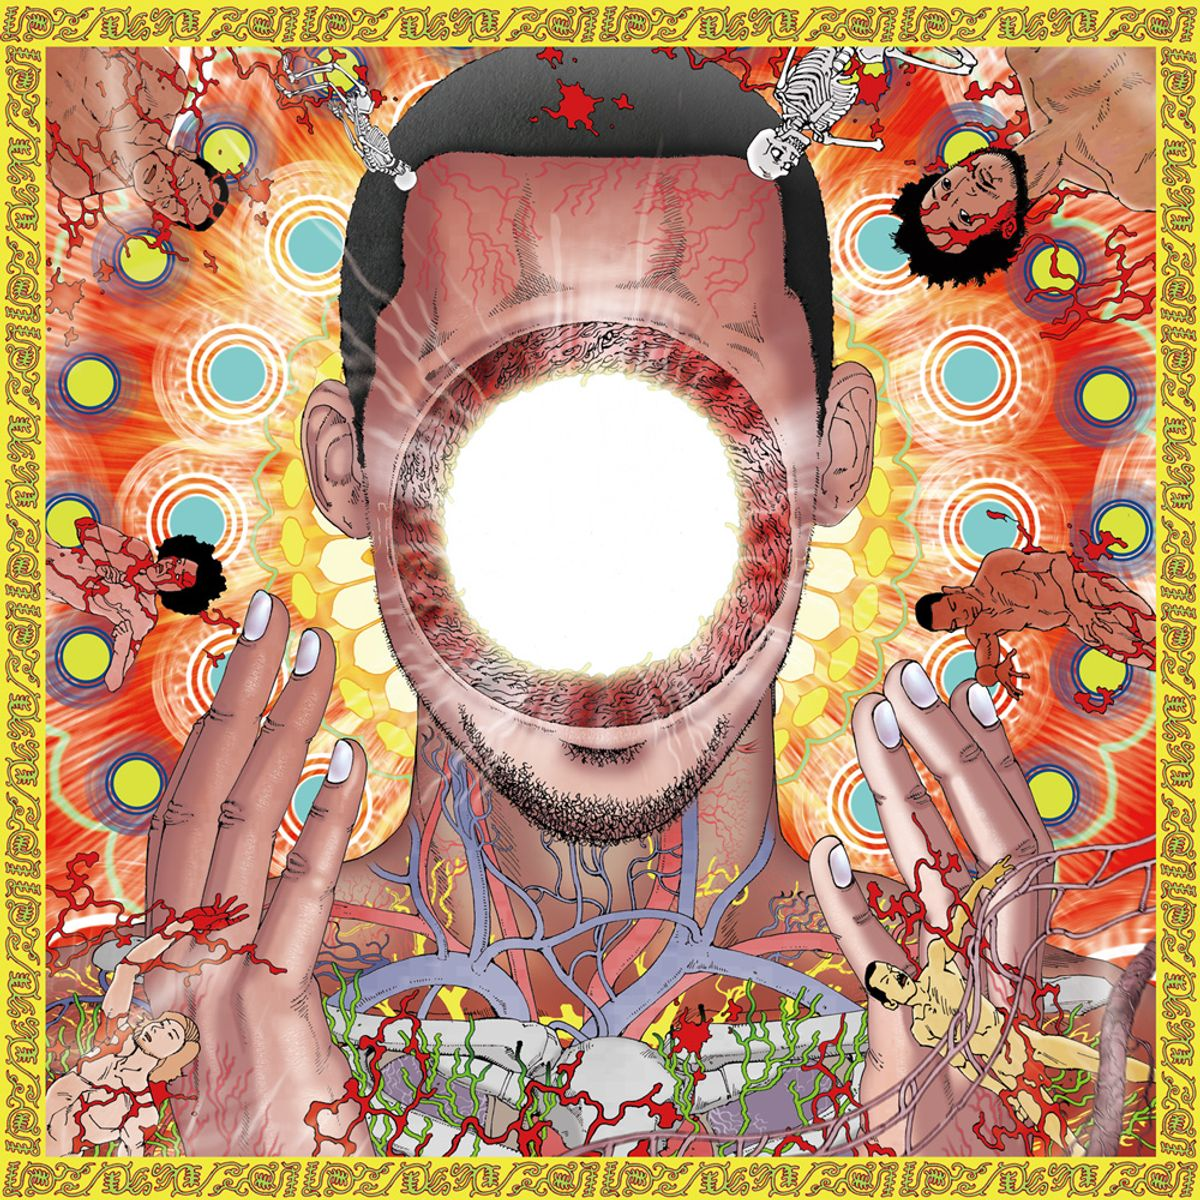 """This CD cover image released by Warp Records shows """"You're Dead!,"""" by Flying Lotus.  (AP Photo/Warp Records)"""